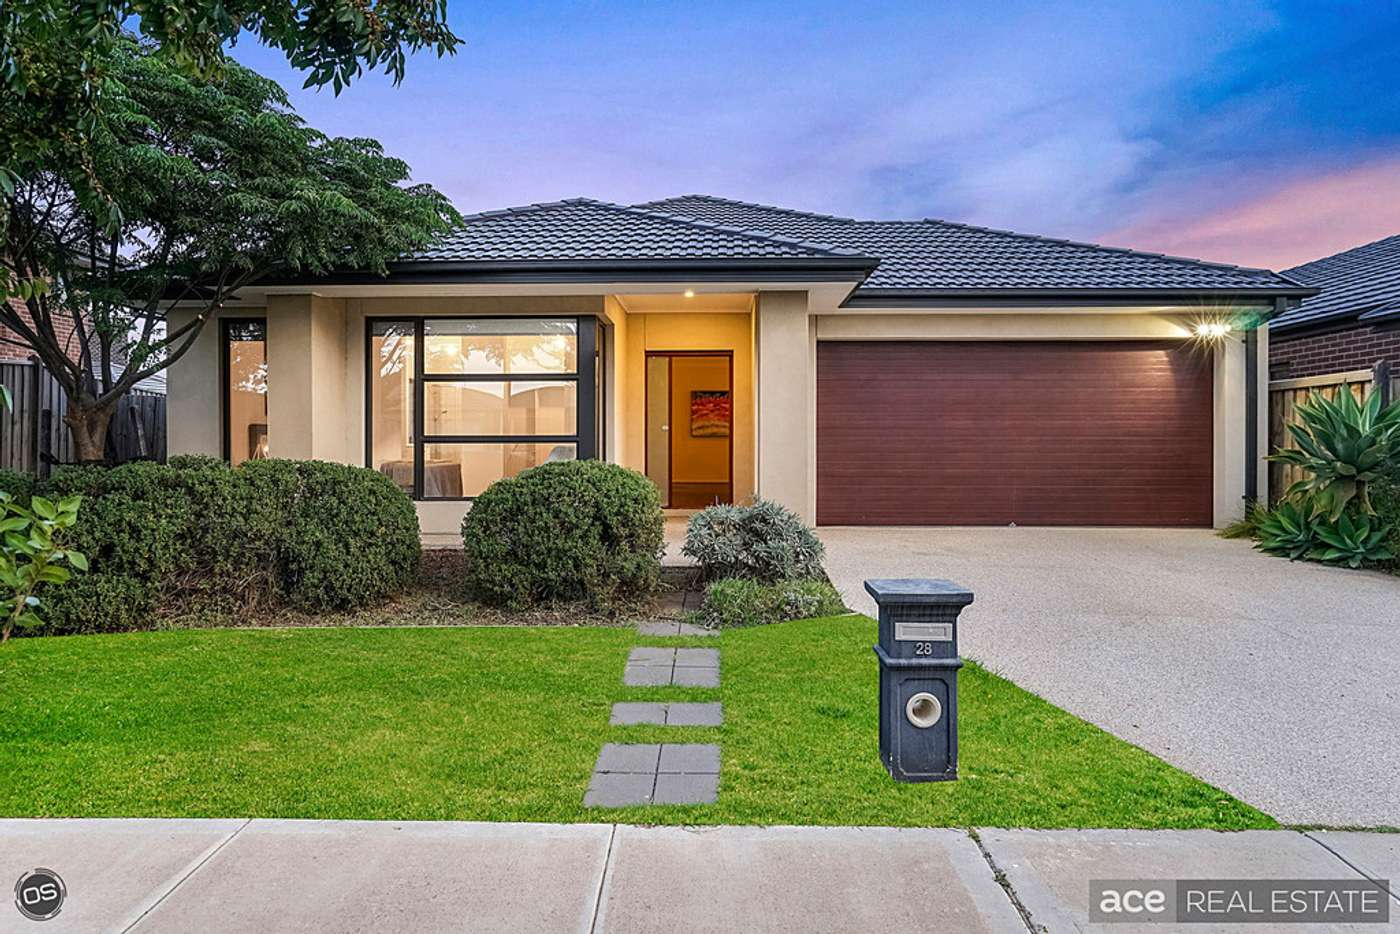 Main view of Homely house listing, 28 Packer Way, Williams Landing VIC 3027